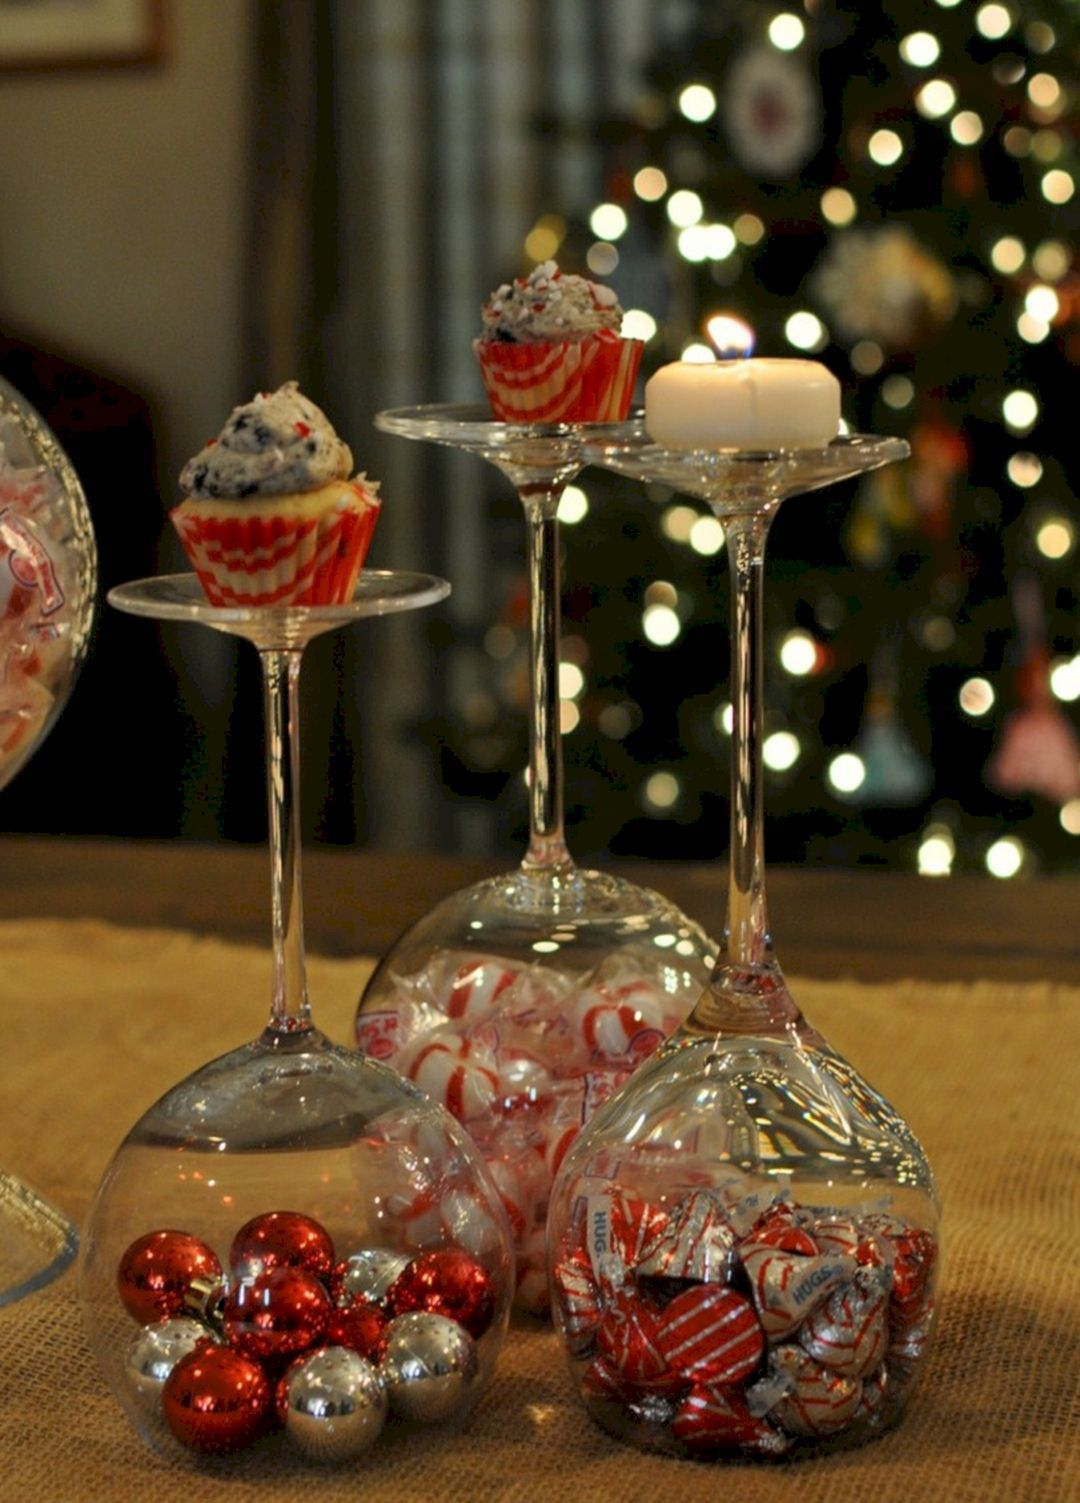 30 Diy Christmas Centerpieces Ideas For Beautiful Home Decoration Holiday Centerpieces Christmas Centerpieces Diy Holiday Centerpieces Diy